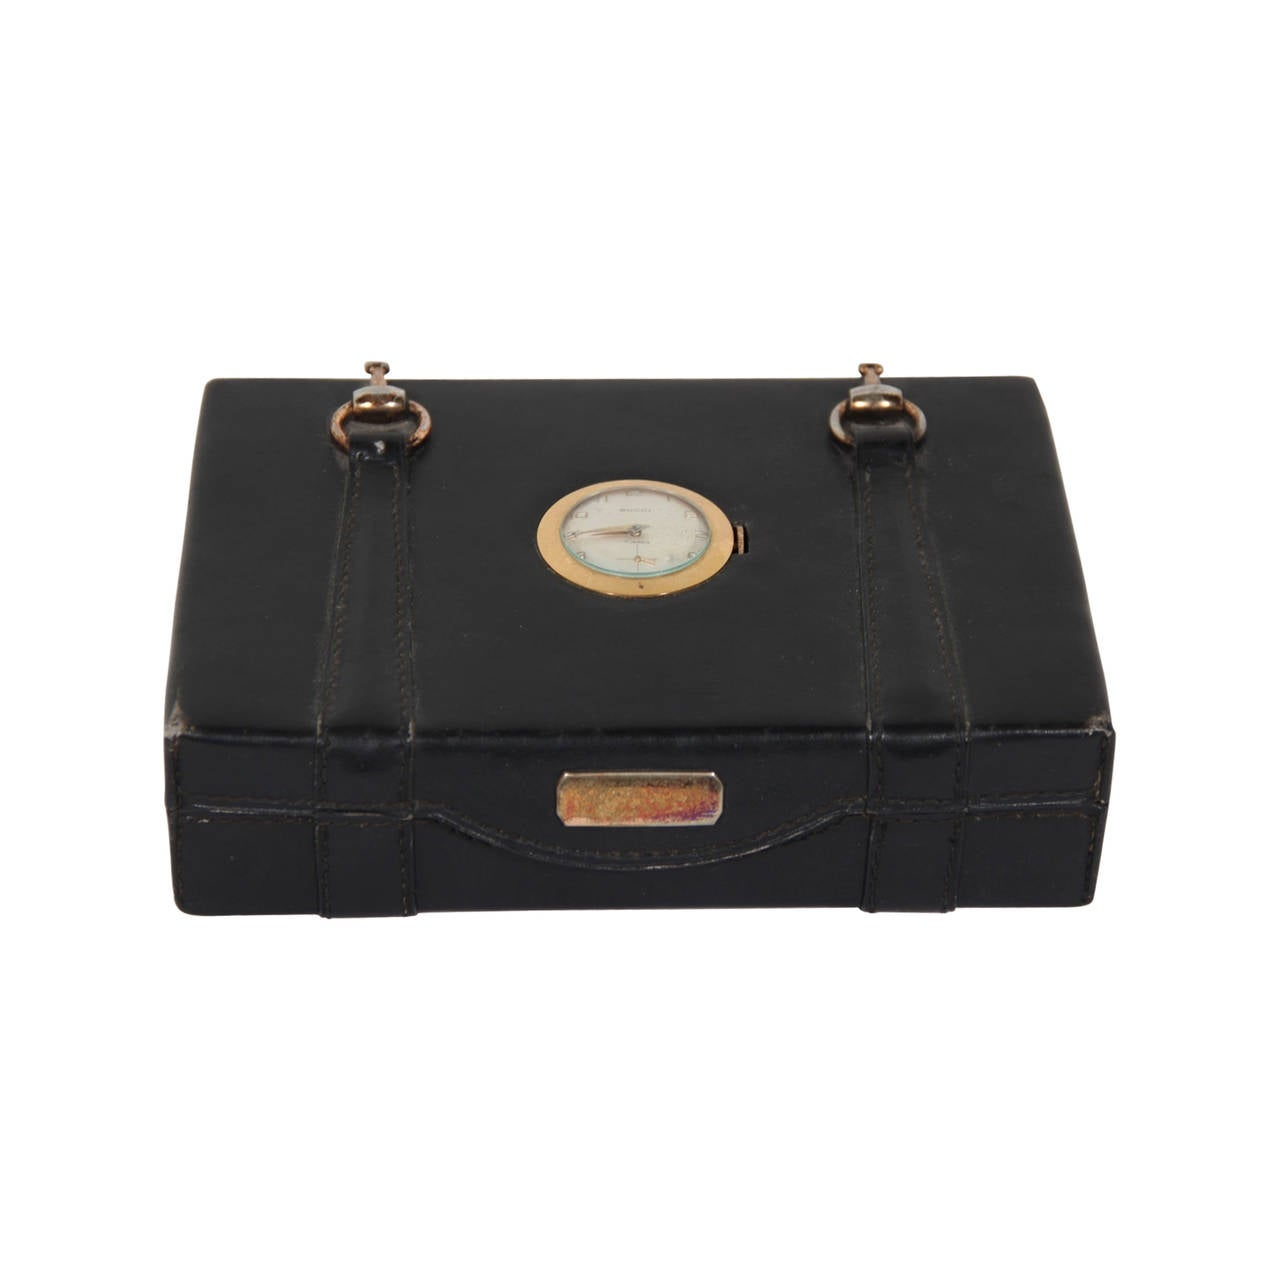 138447eaf8f GUCCI VINTAGE Black Leather HORSEBIT BOX Jewelry CASE w  WATCH Rare For Sale